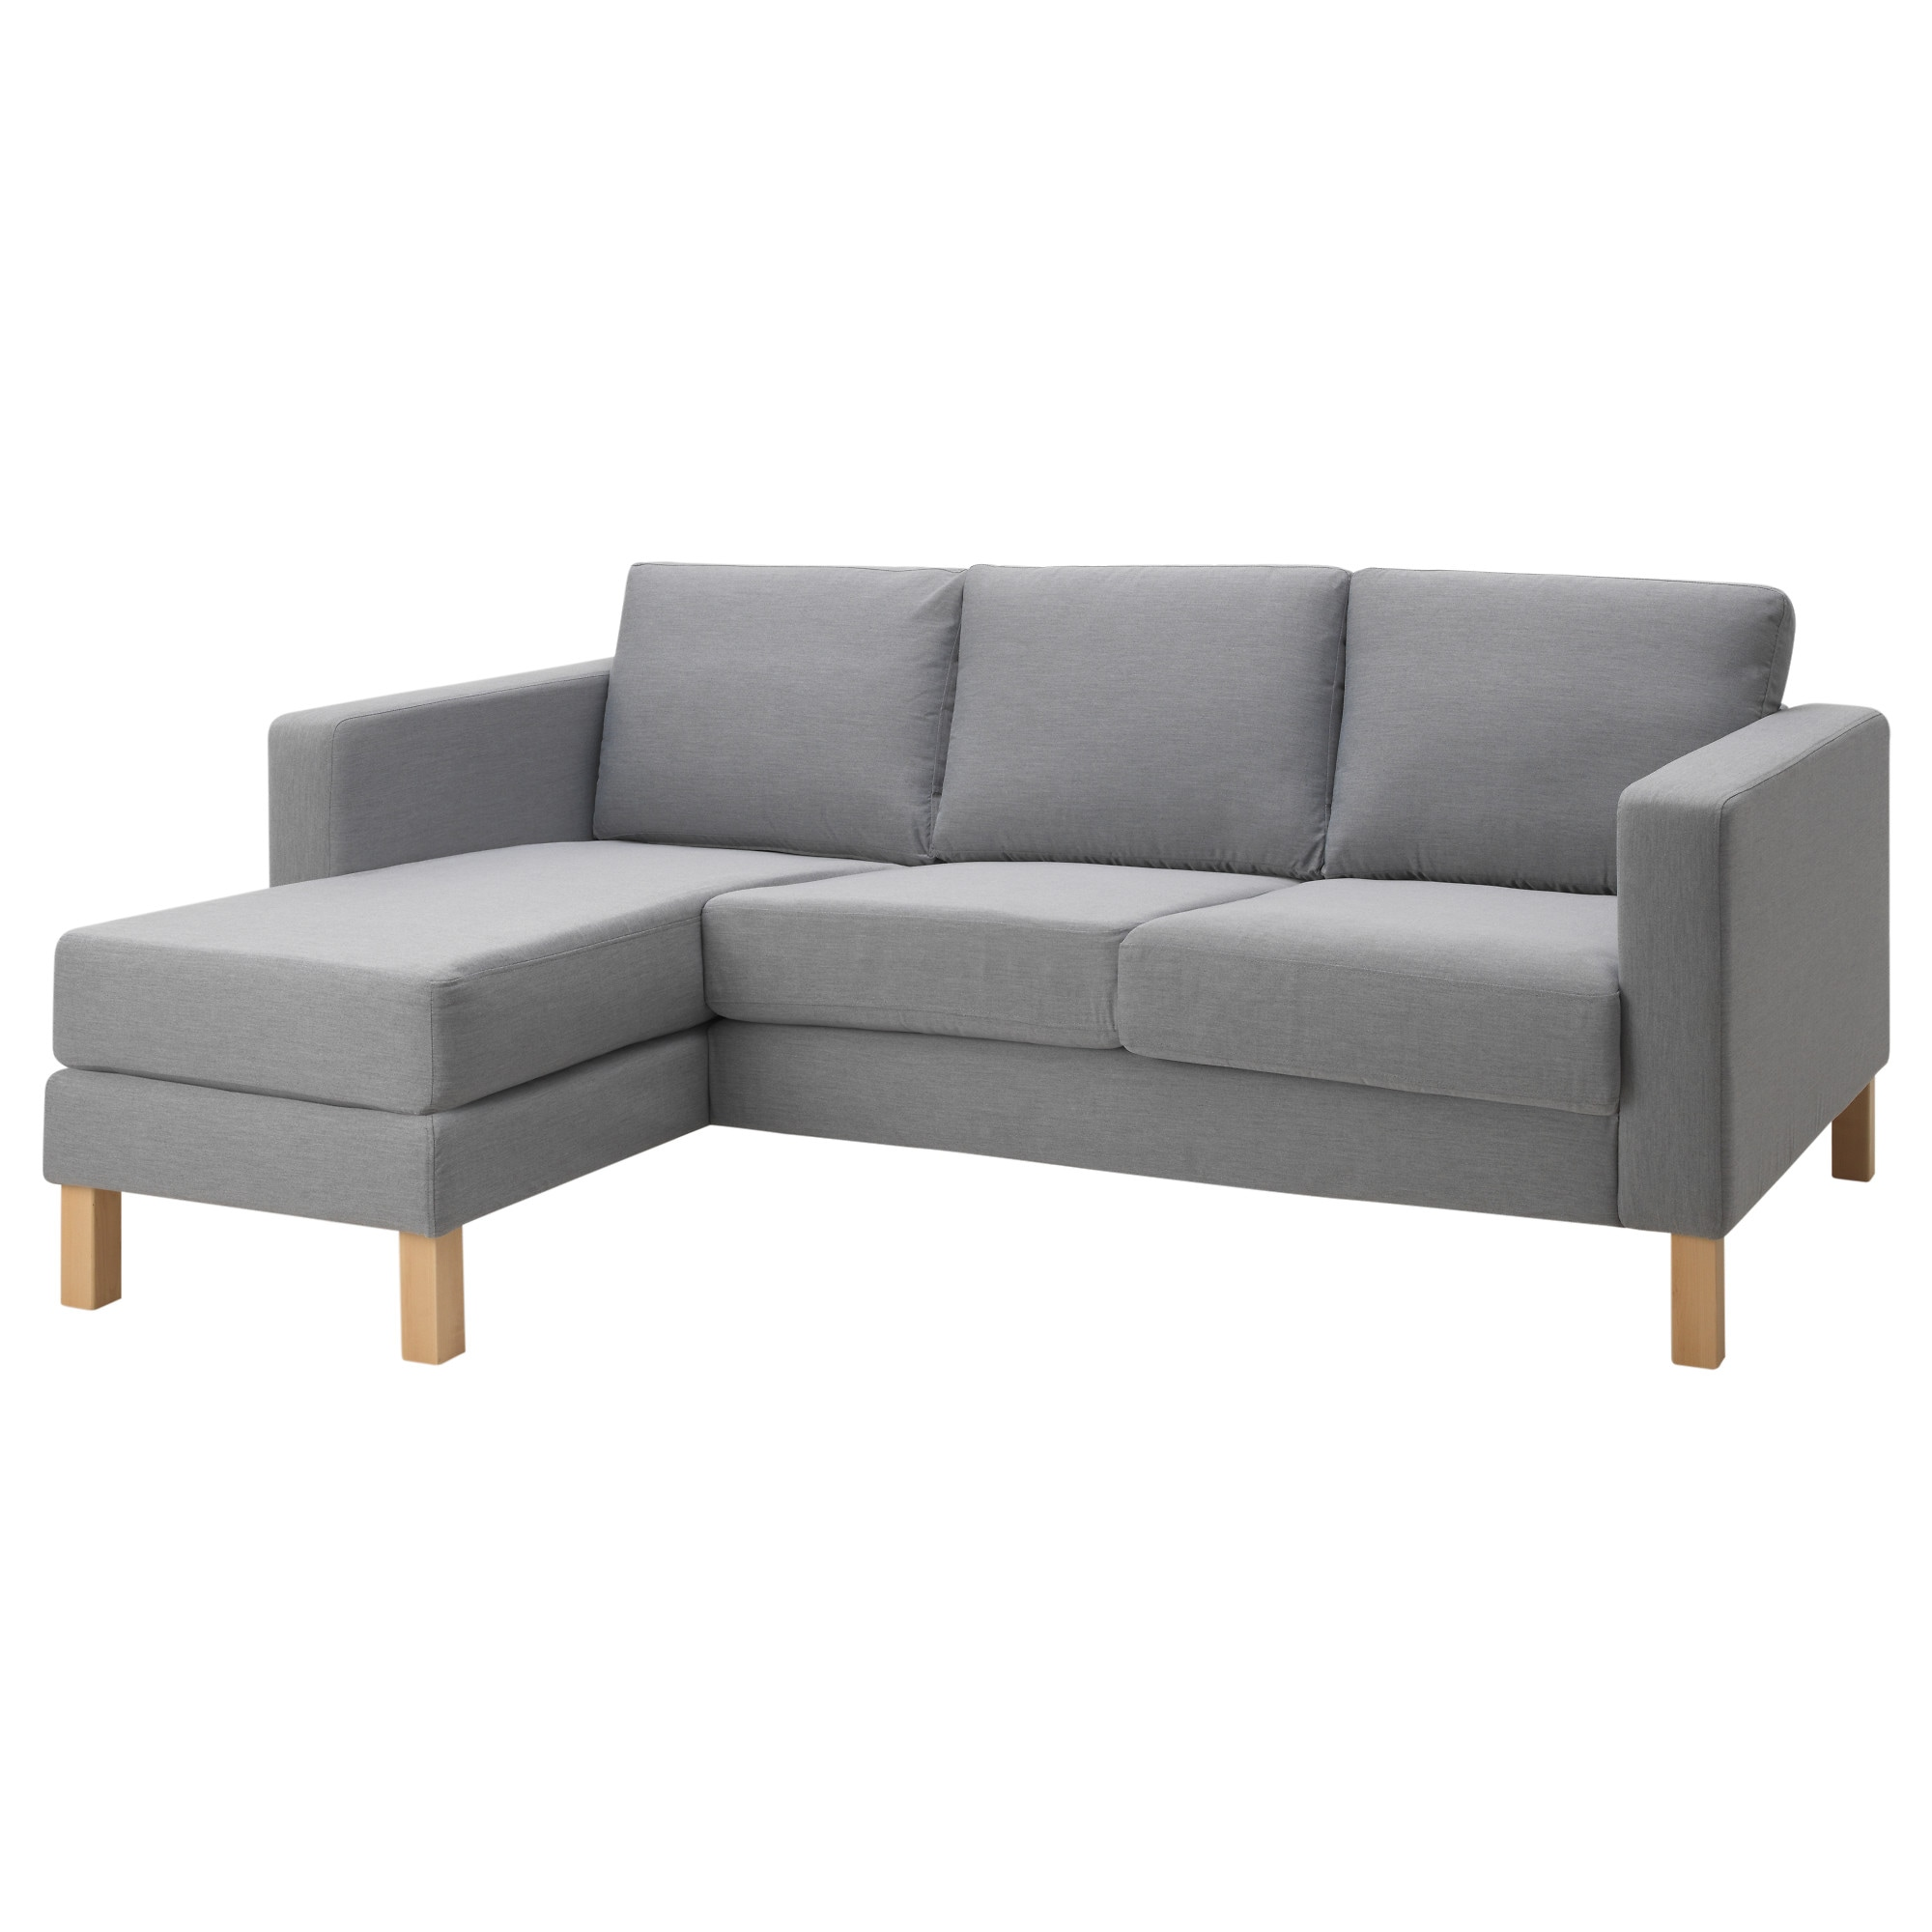 sofa karlstad ikea karlstad sofa seat thesofa. Black Bedroom Furniture Sets. Home Design Ideas